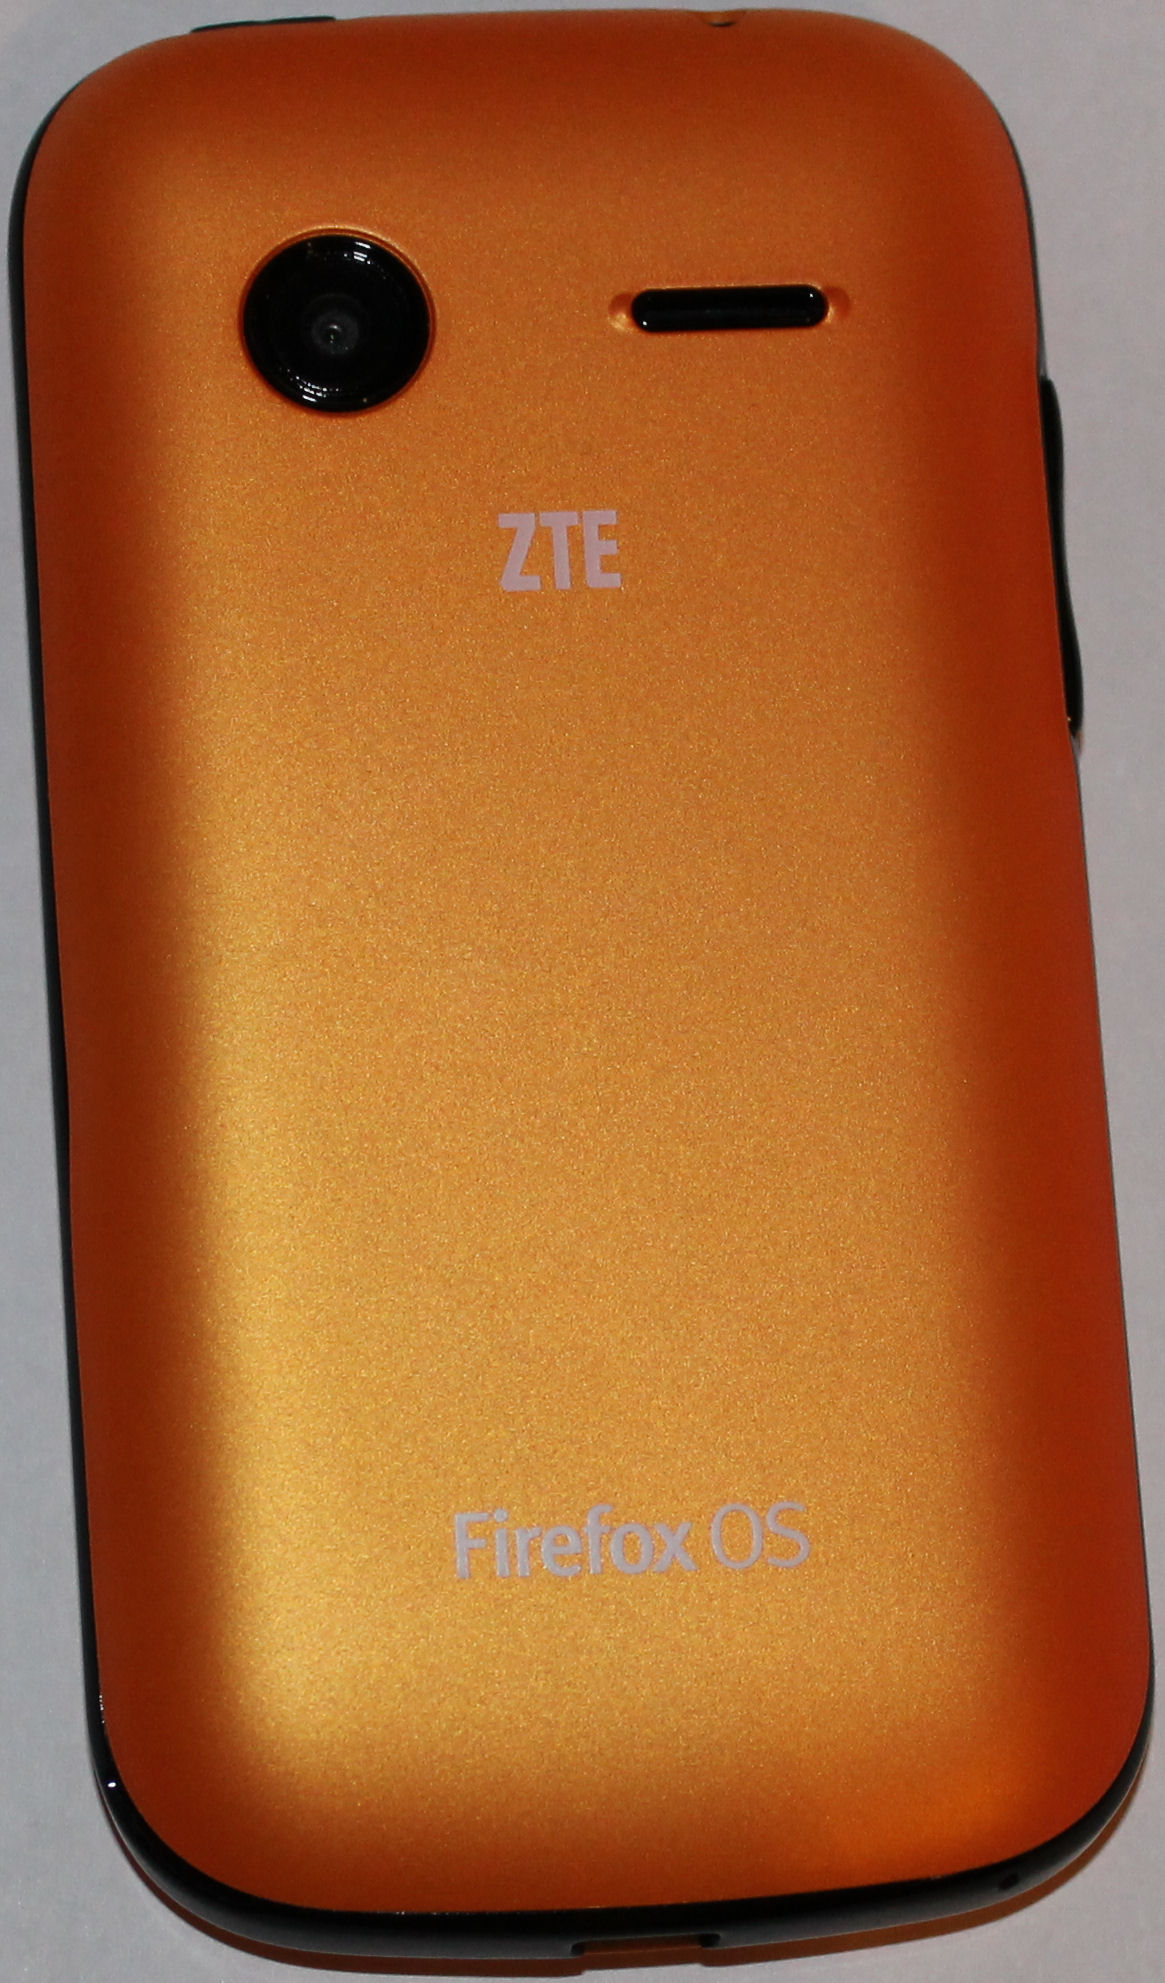 zte open source never really went